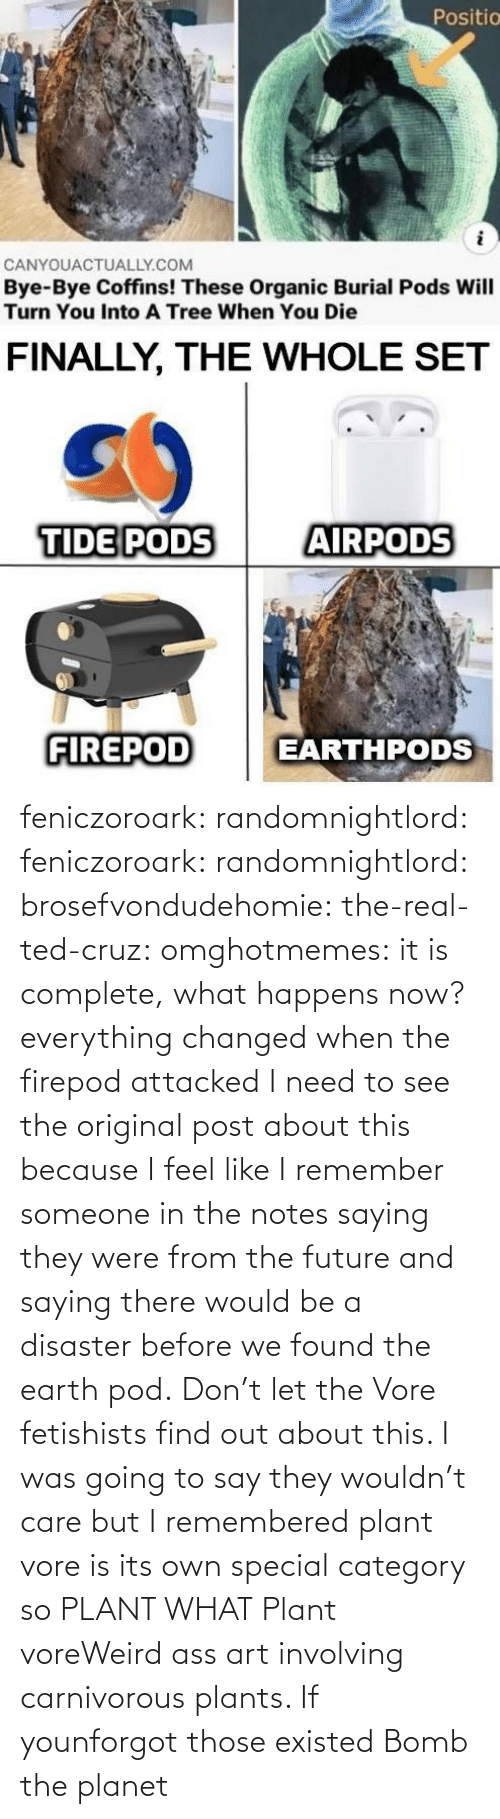 Future, Ted, and Ted Cruz: feniczoroark:  randomnightlord:  feniczoroark:  randomnightlord:  brosefvondudehomie: the-real-ted-cruz:  omghotmemes: it is complete, what happens now? everything changed when the firepod attacked    I need to see the original post about this because I feel like I remember someone in the notes saying they were from the future and saying there would be a disaster before we found the earth pod.    Don't let the Vore fetishists find out about this.    I was going to say they wouldn't care but I remembered plant vore is its own special category so   PLANT WHAT   Plant voreWeird ass art involving carnivorous plants. If younforgot those existed   Bomb the planet